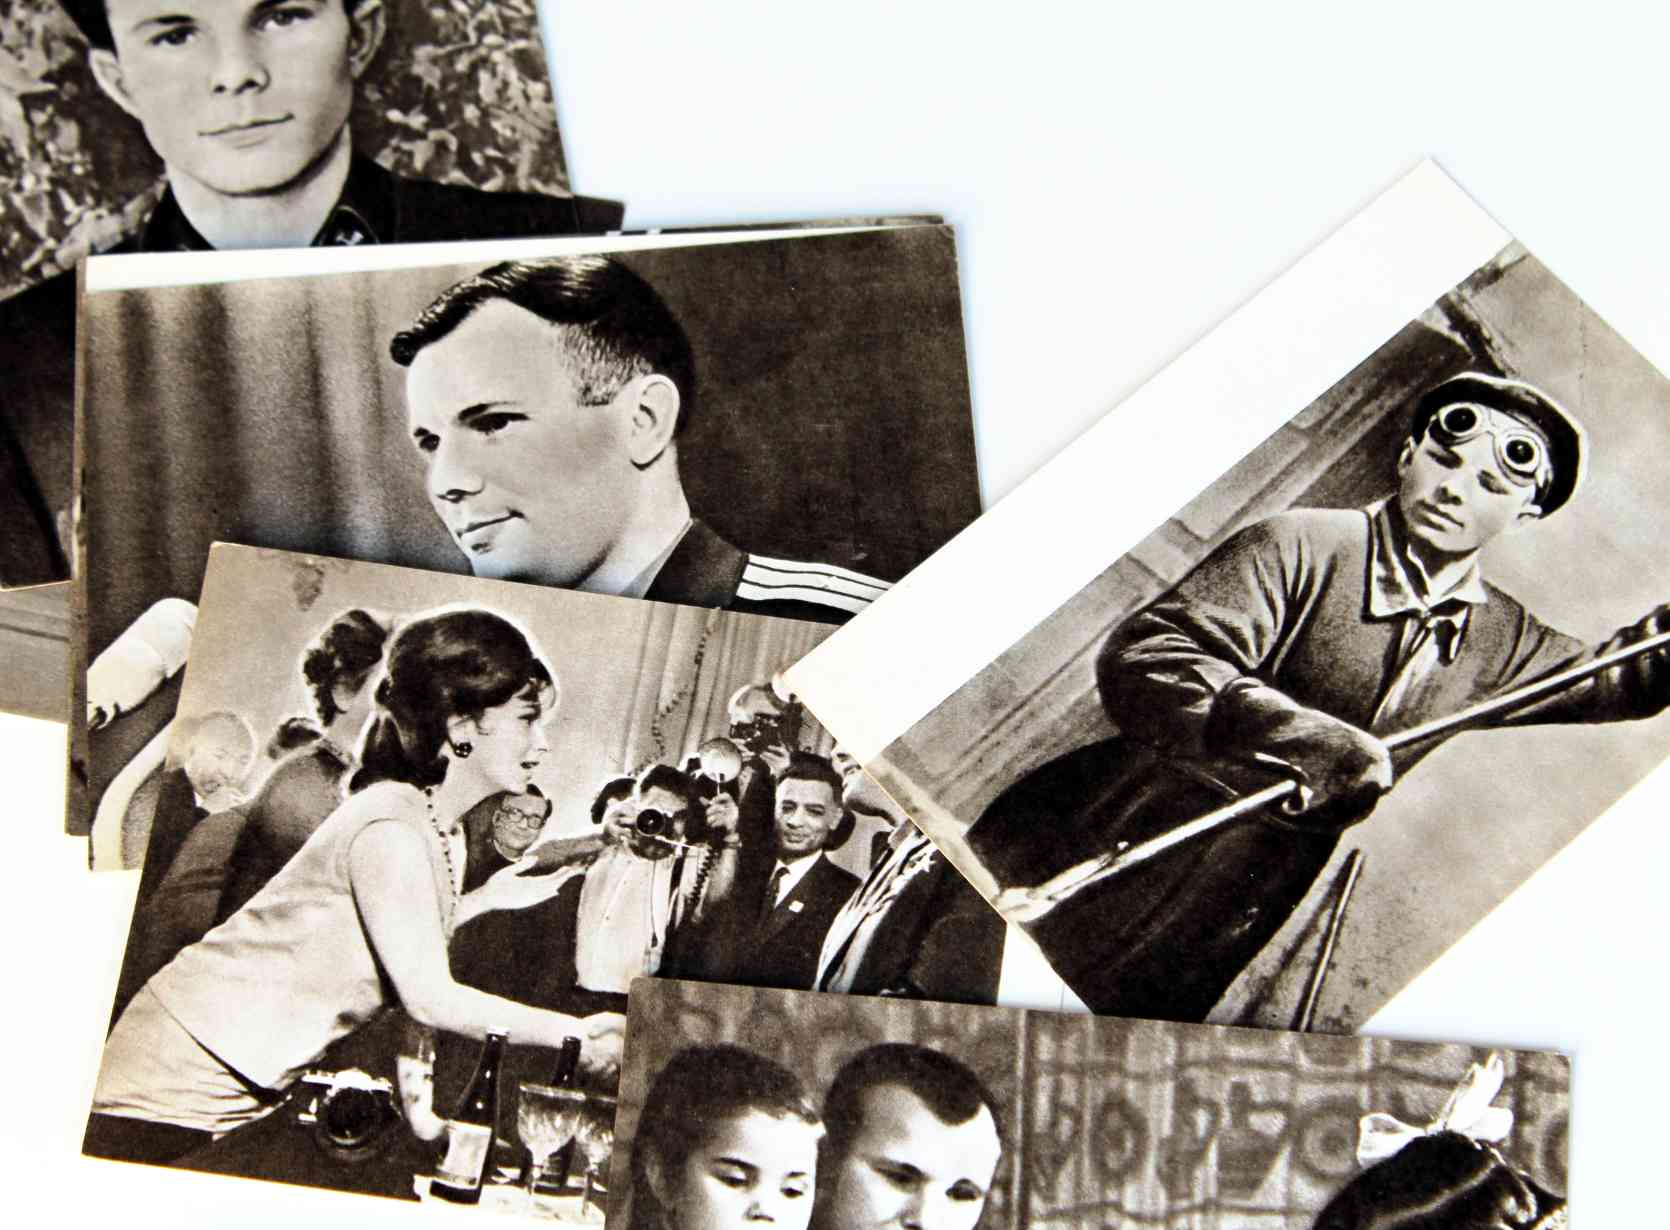 Yuri Gagarin postcard set including his meeting with Gina Lollobrigida!